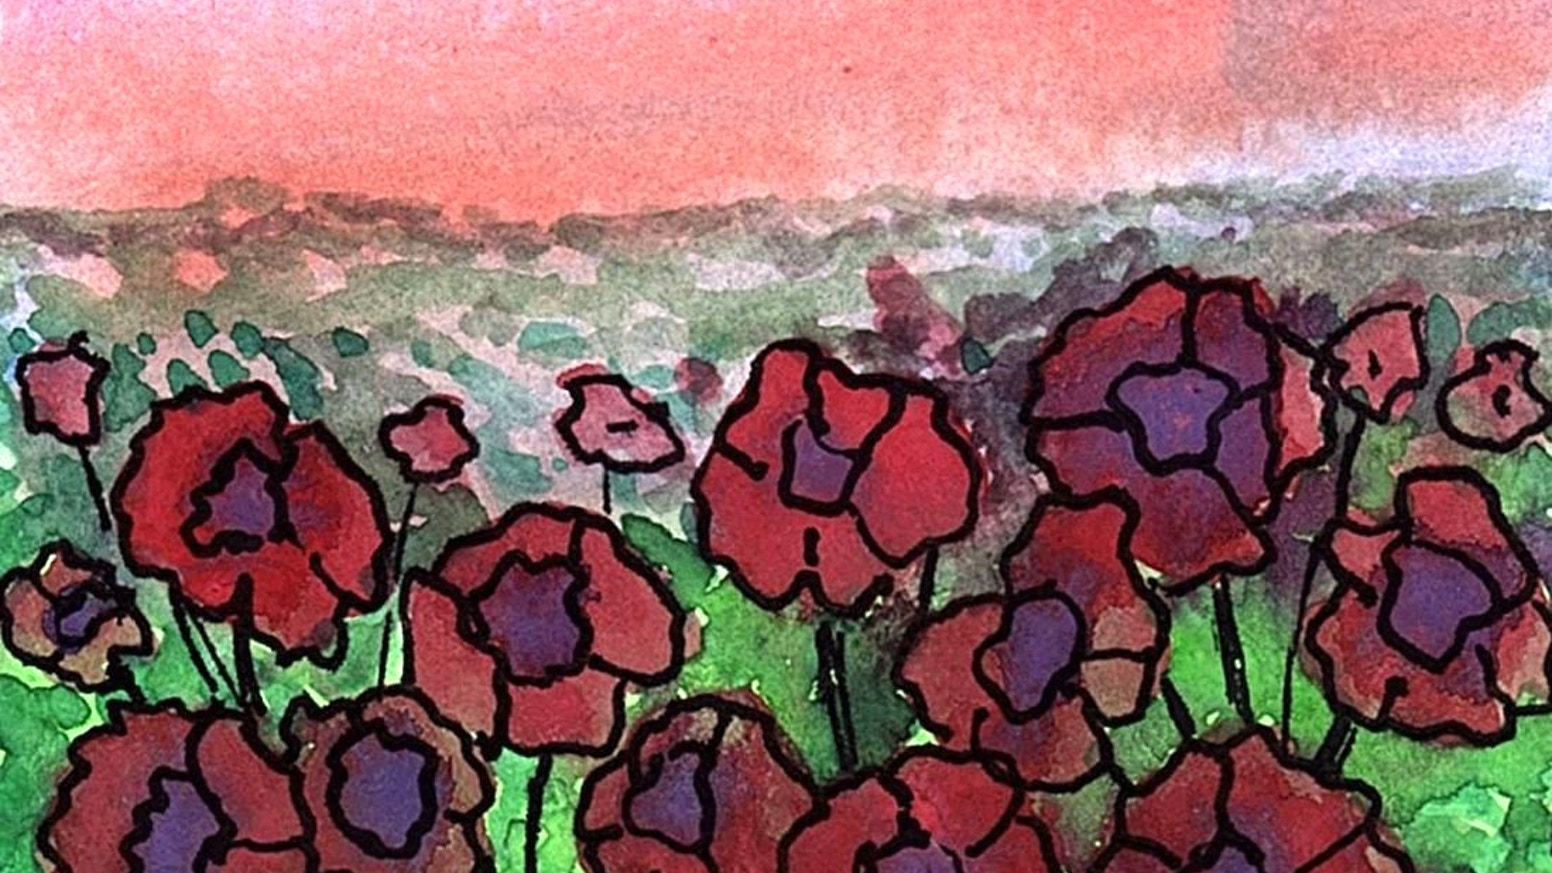 I Love To Create Mini Watercolor Paintings Inspired By The Landscape Around Me And Places In My Imagination